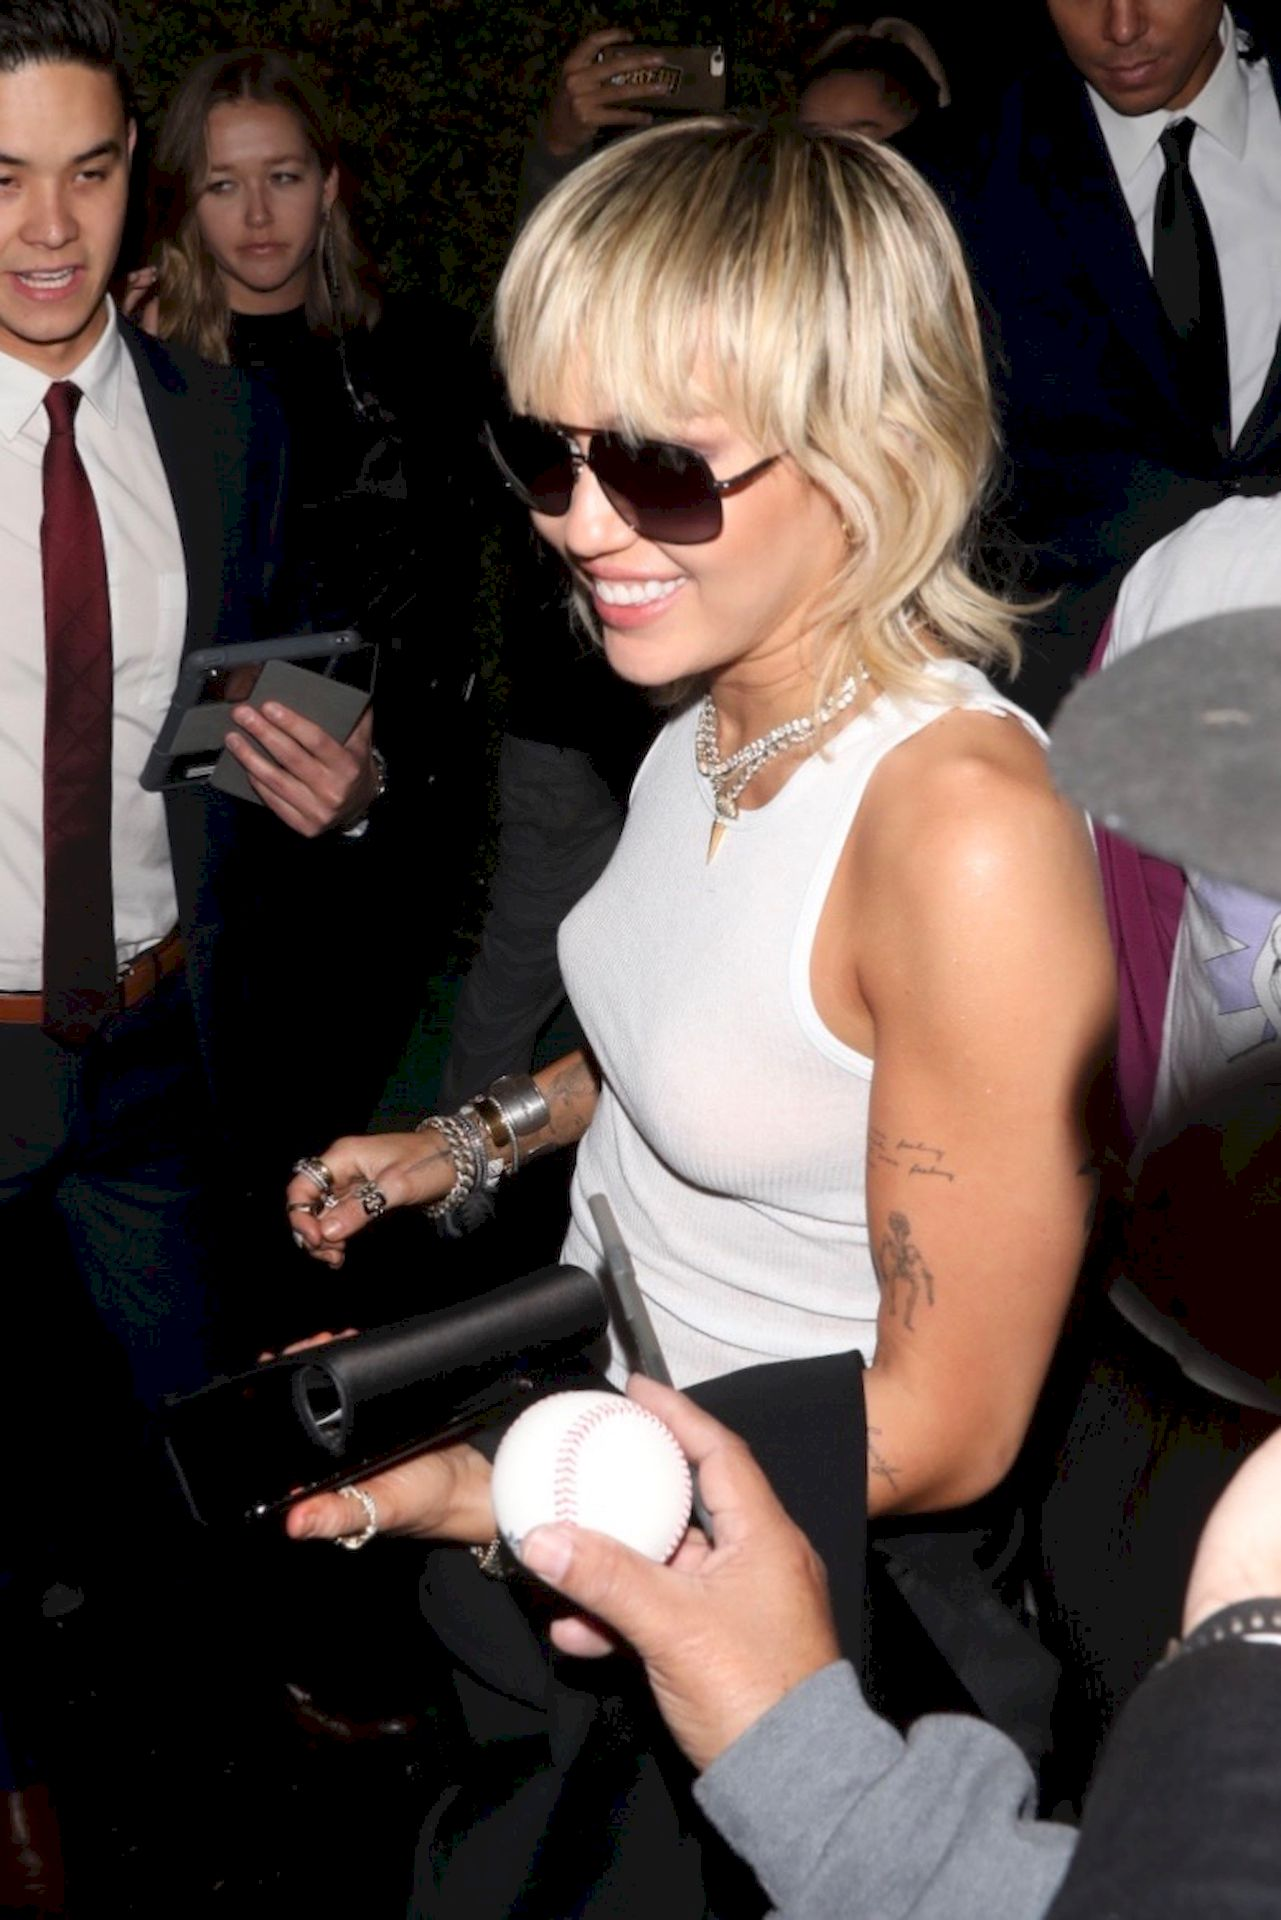 Miley Cyrus Leaves Chateau Marmont Wearing A Plain White Tank Top 0005